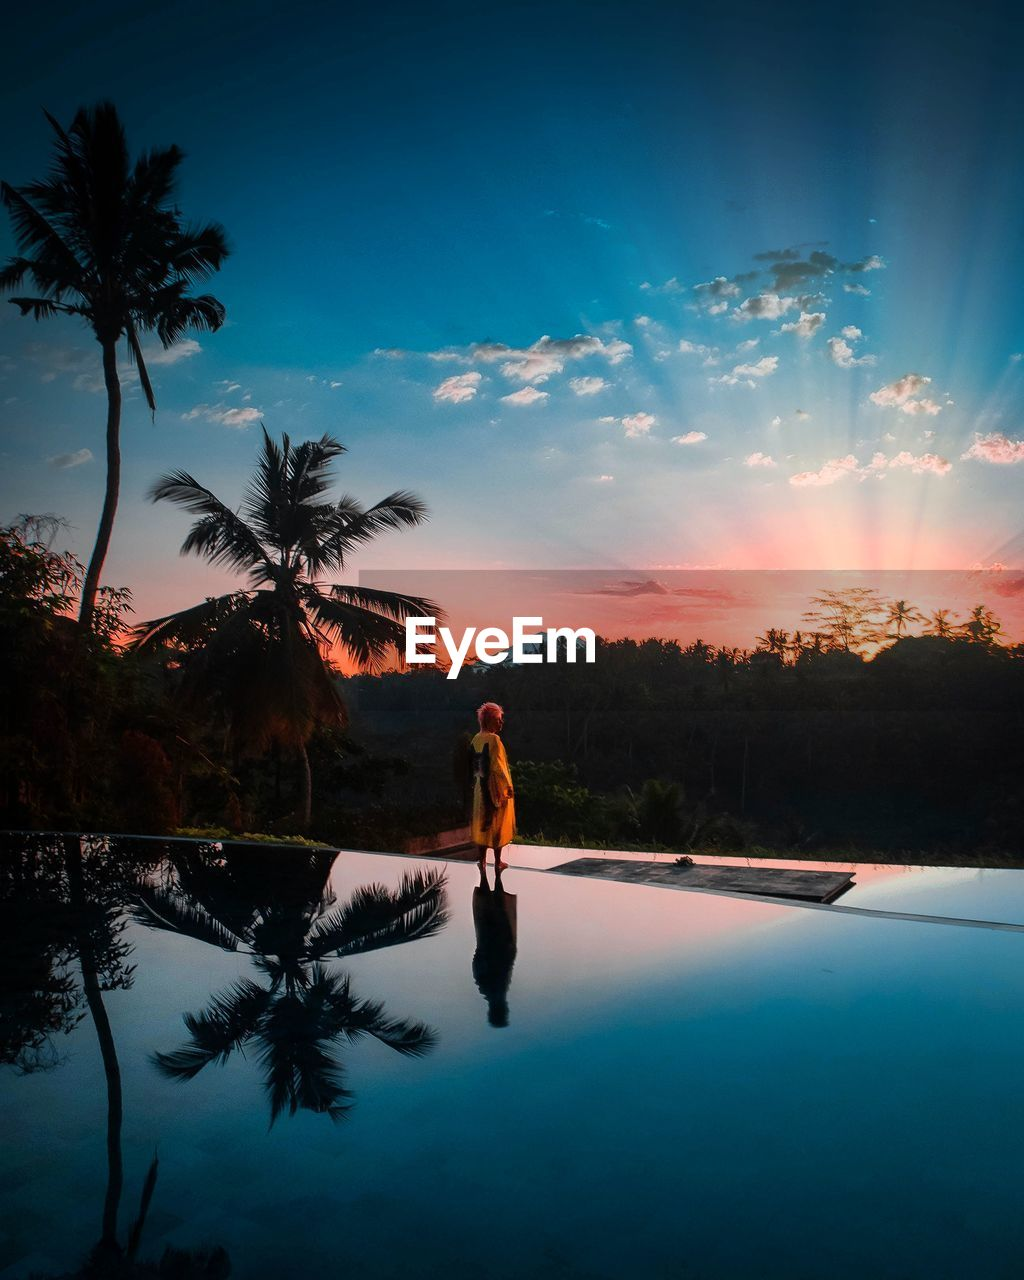 tree, sky, water, tropical climate, palm tree, one person, plant, swimming pool, real people, beauty in nature, scenics - nature, nature, sunset, cloud - sky, pool, lifestyles, reflection, leisure activity, infinity pool, outdoors